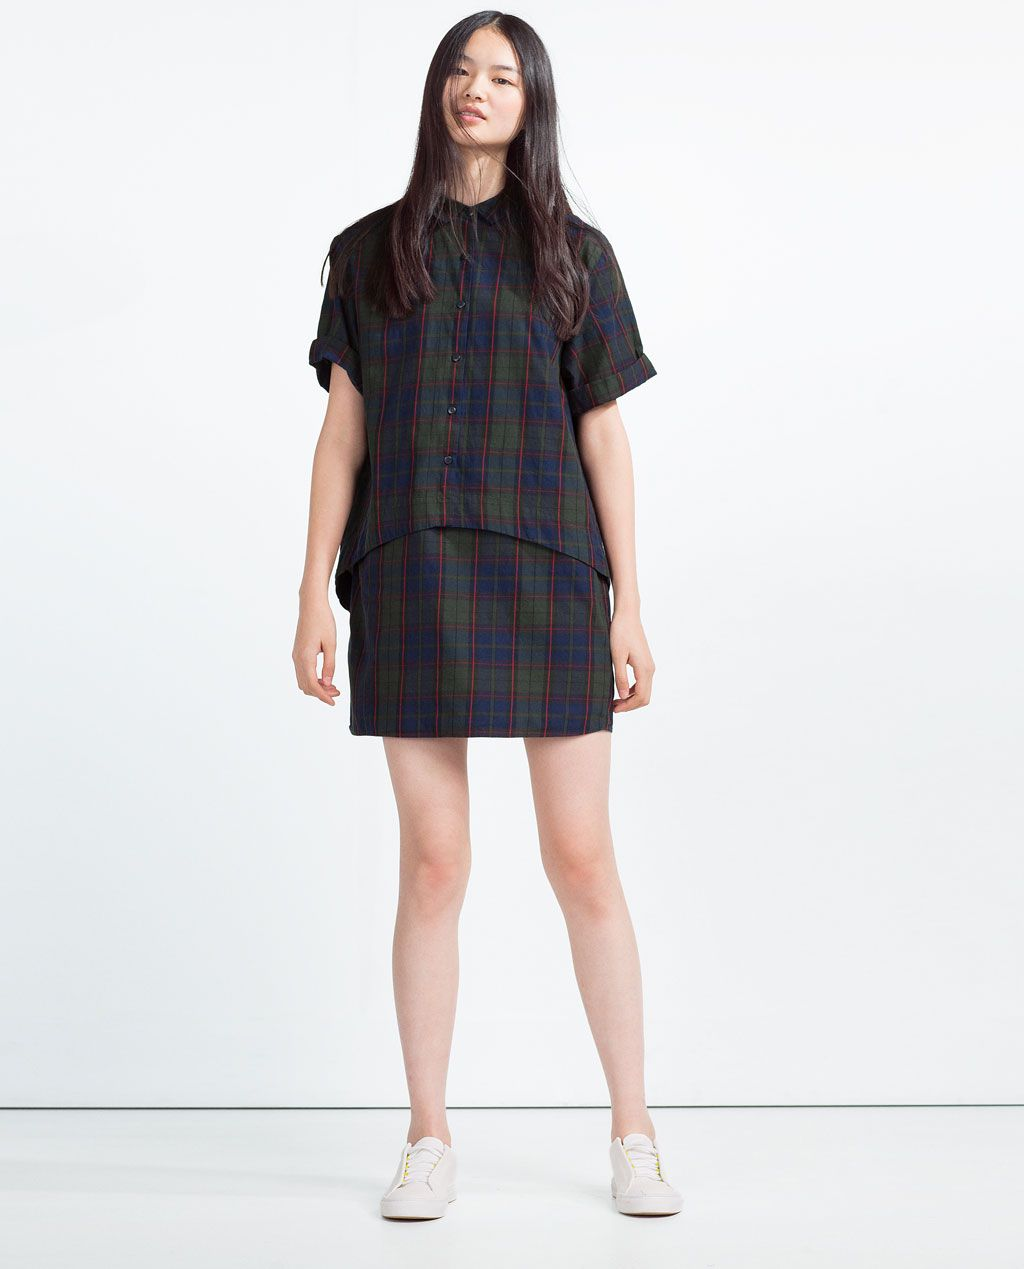 3a3d381389 ZARA - TRF - CHECKED ORGANIC COTTON DRESS